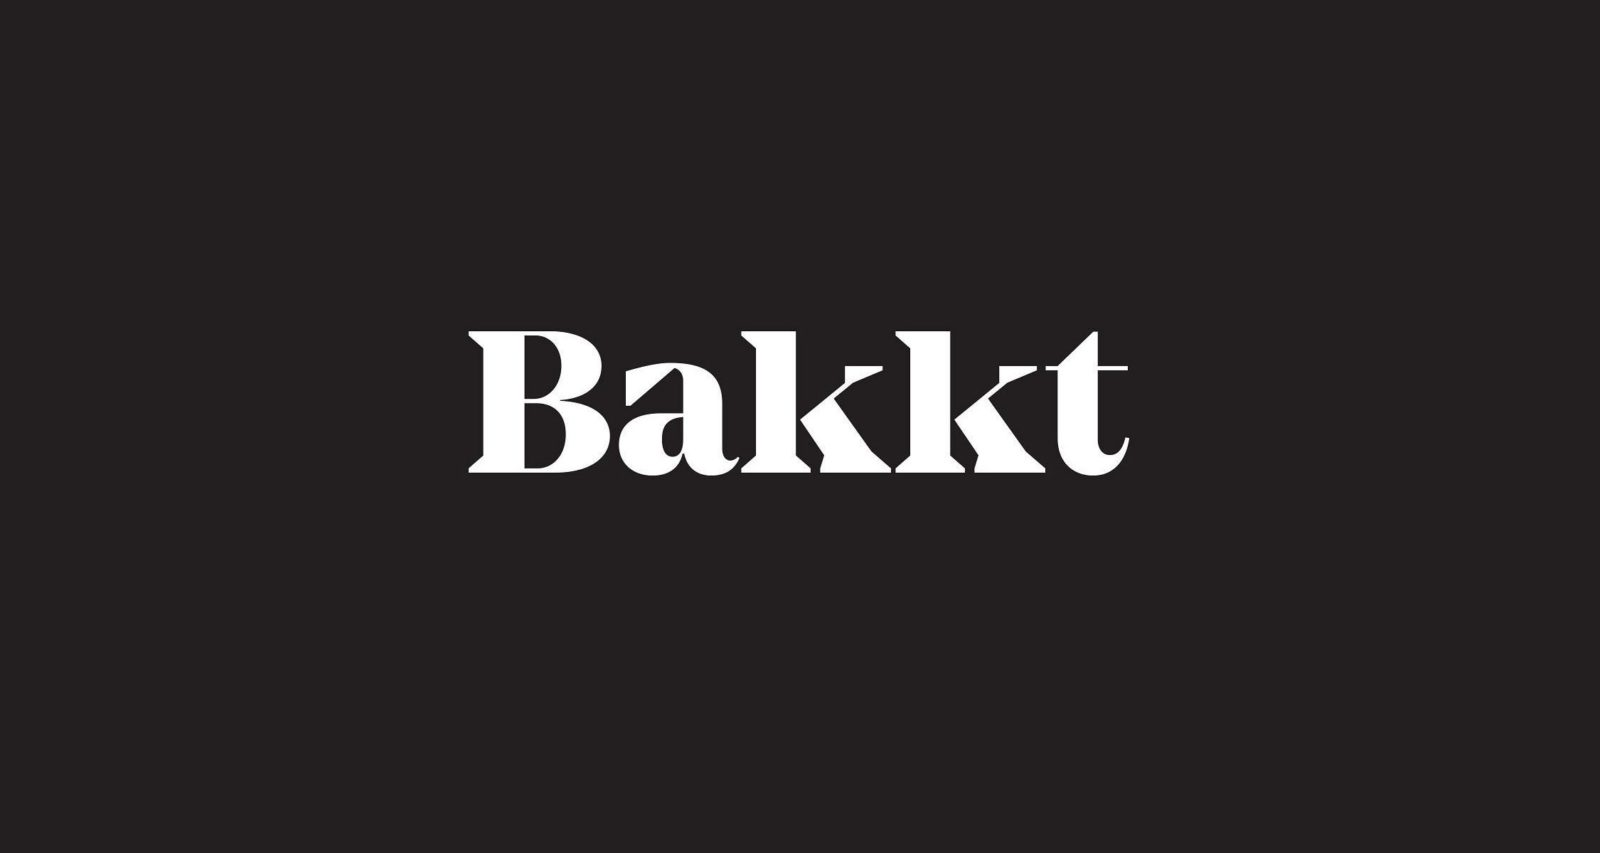 VIH SPAC merging with bakkt